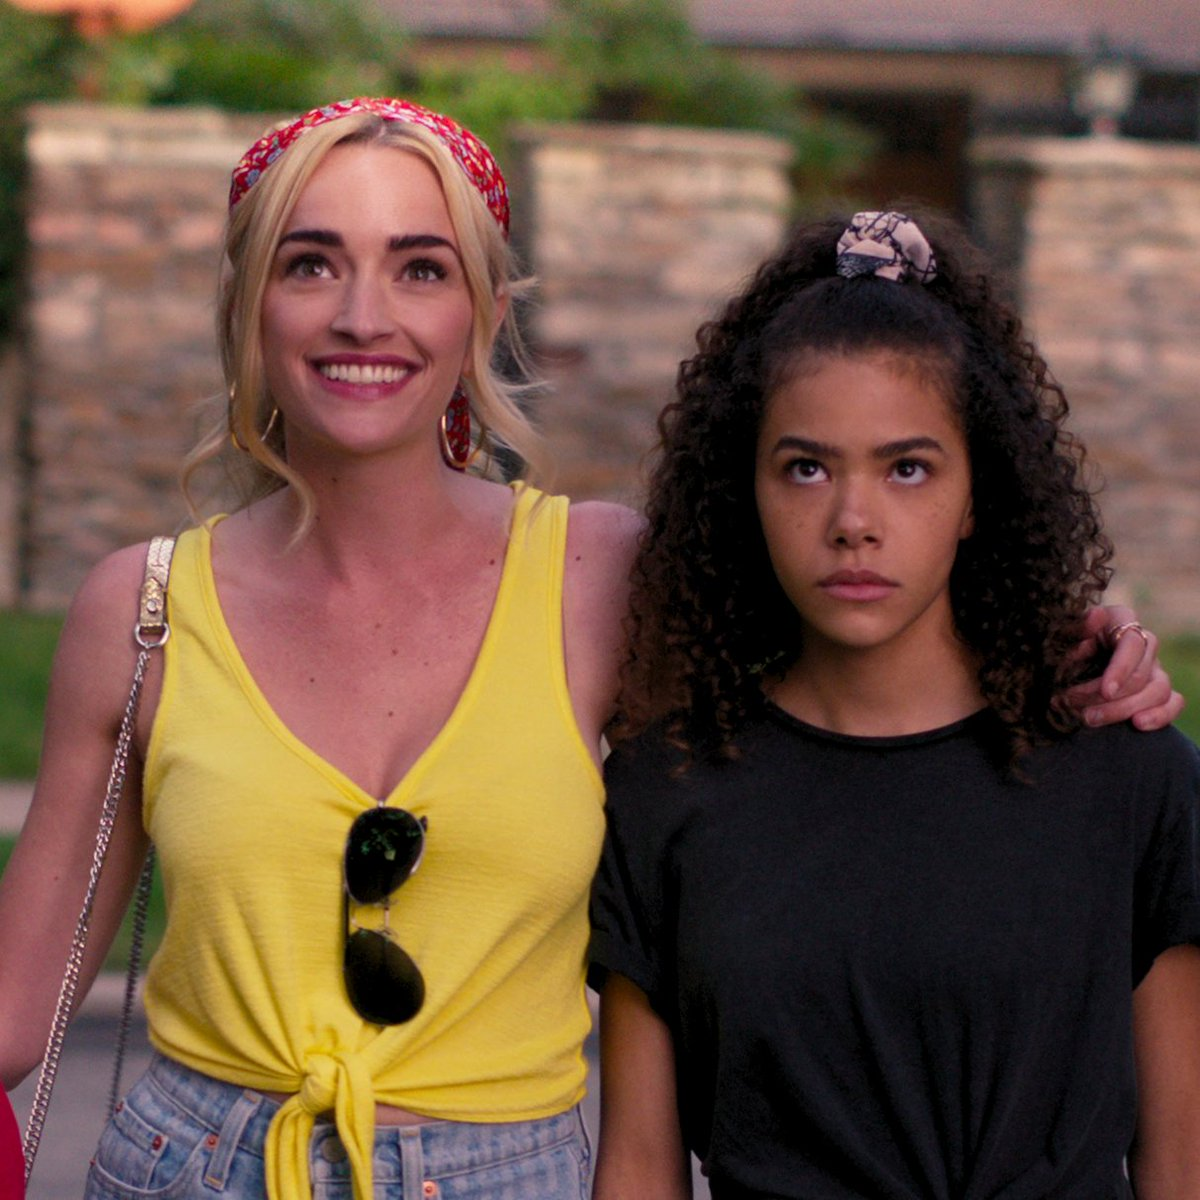 Meet Ginny and Georgia: a daughter and mother with a lot to figure out... mostly themselves.